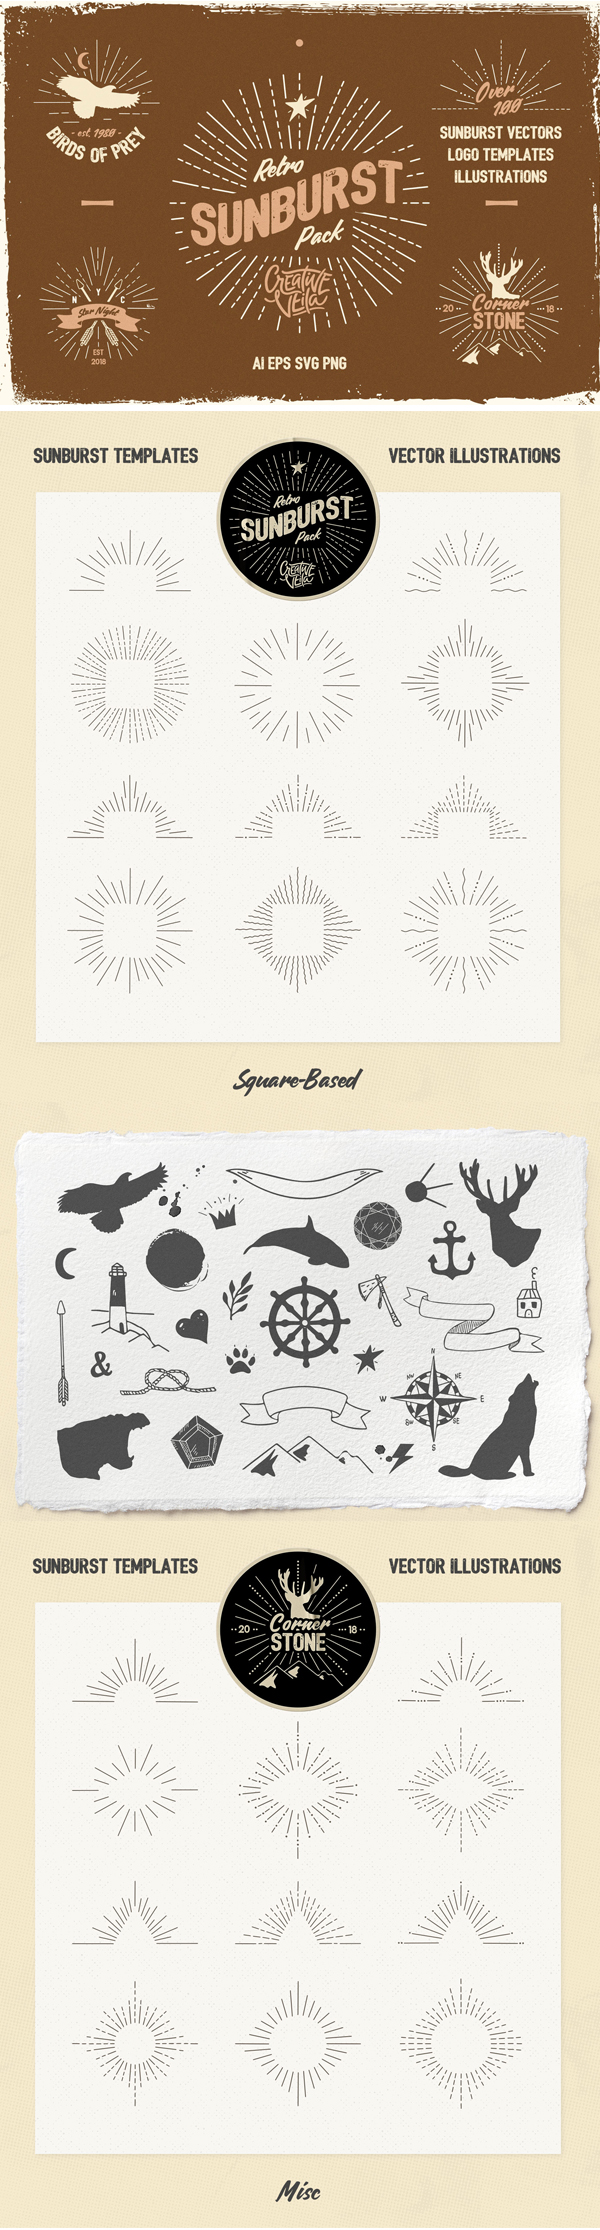 Freebies for 2019: Free Vintage Glory: Sunburst Vector Set